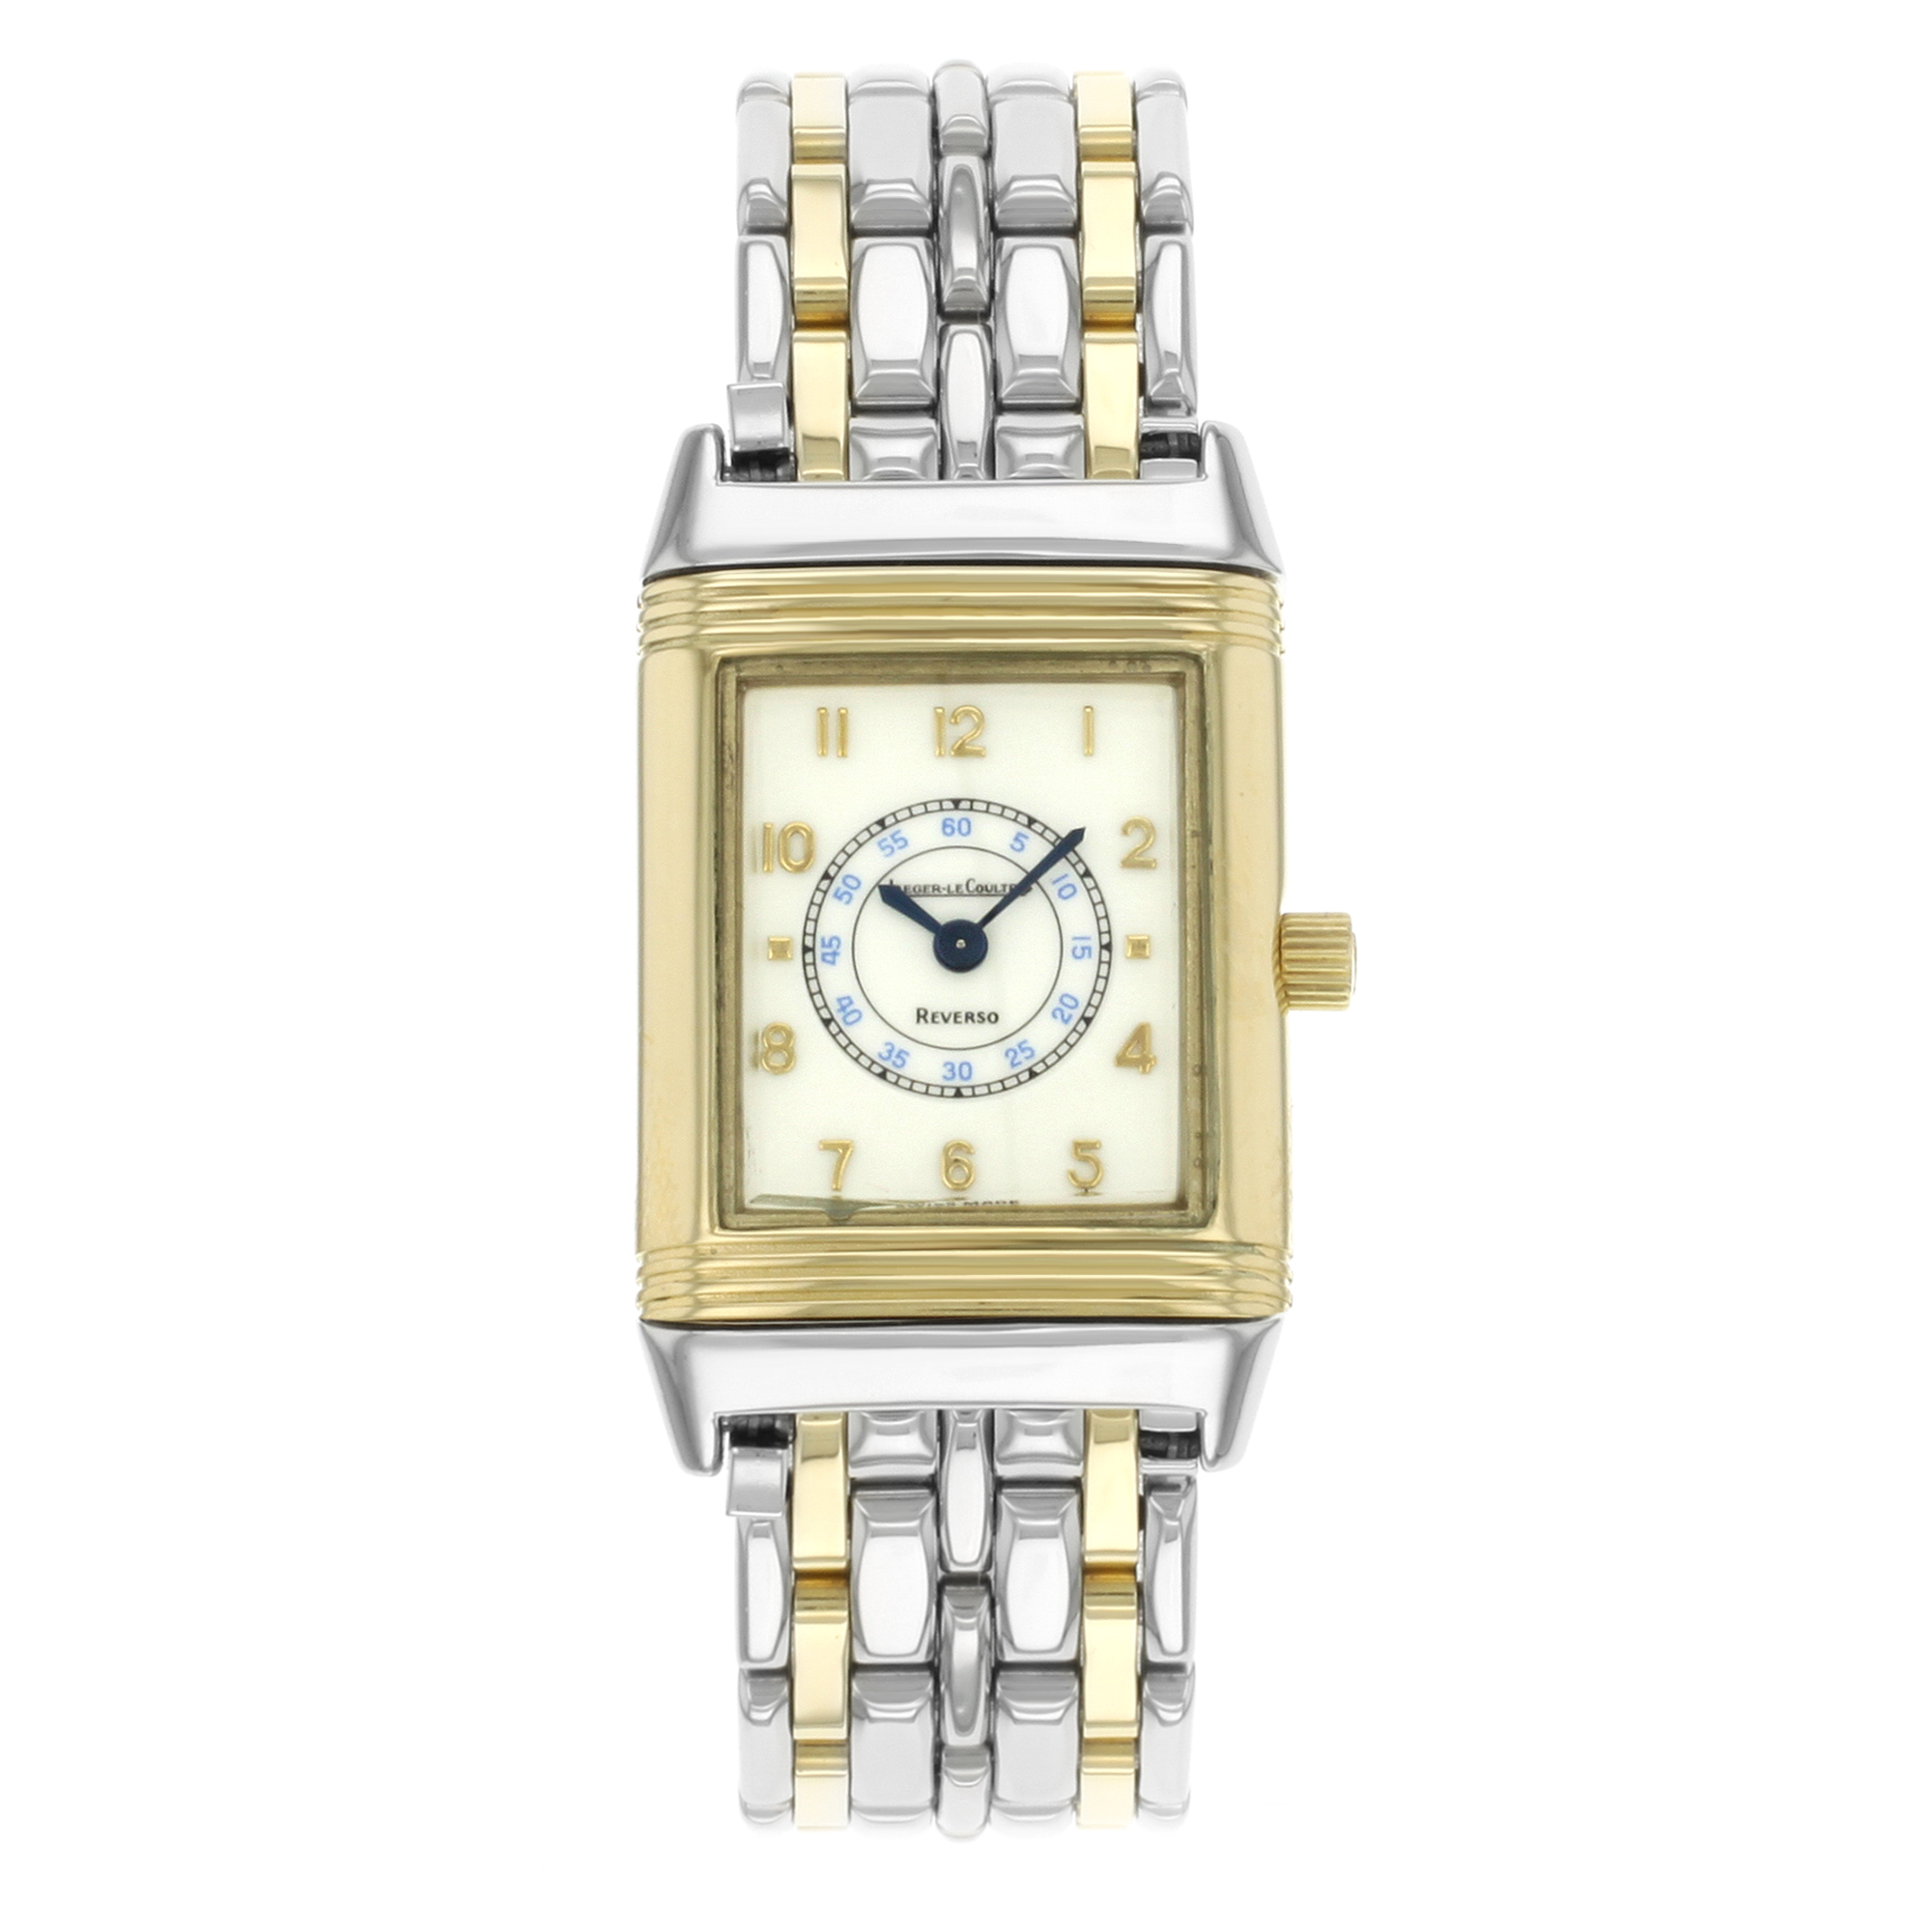 9170ed69f808 Jaeger-Lecoultre Reverso Steel 18K Yellow Gold Cream Dial Quartz Watch  260.5.08